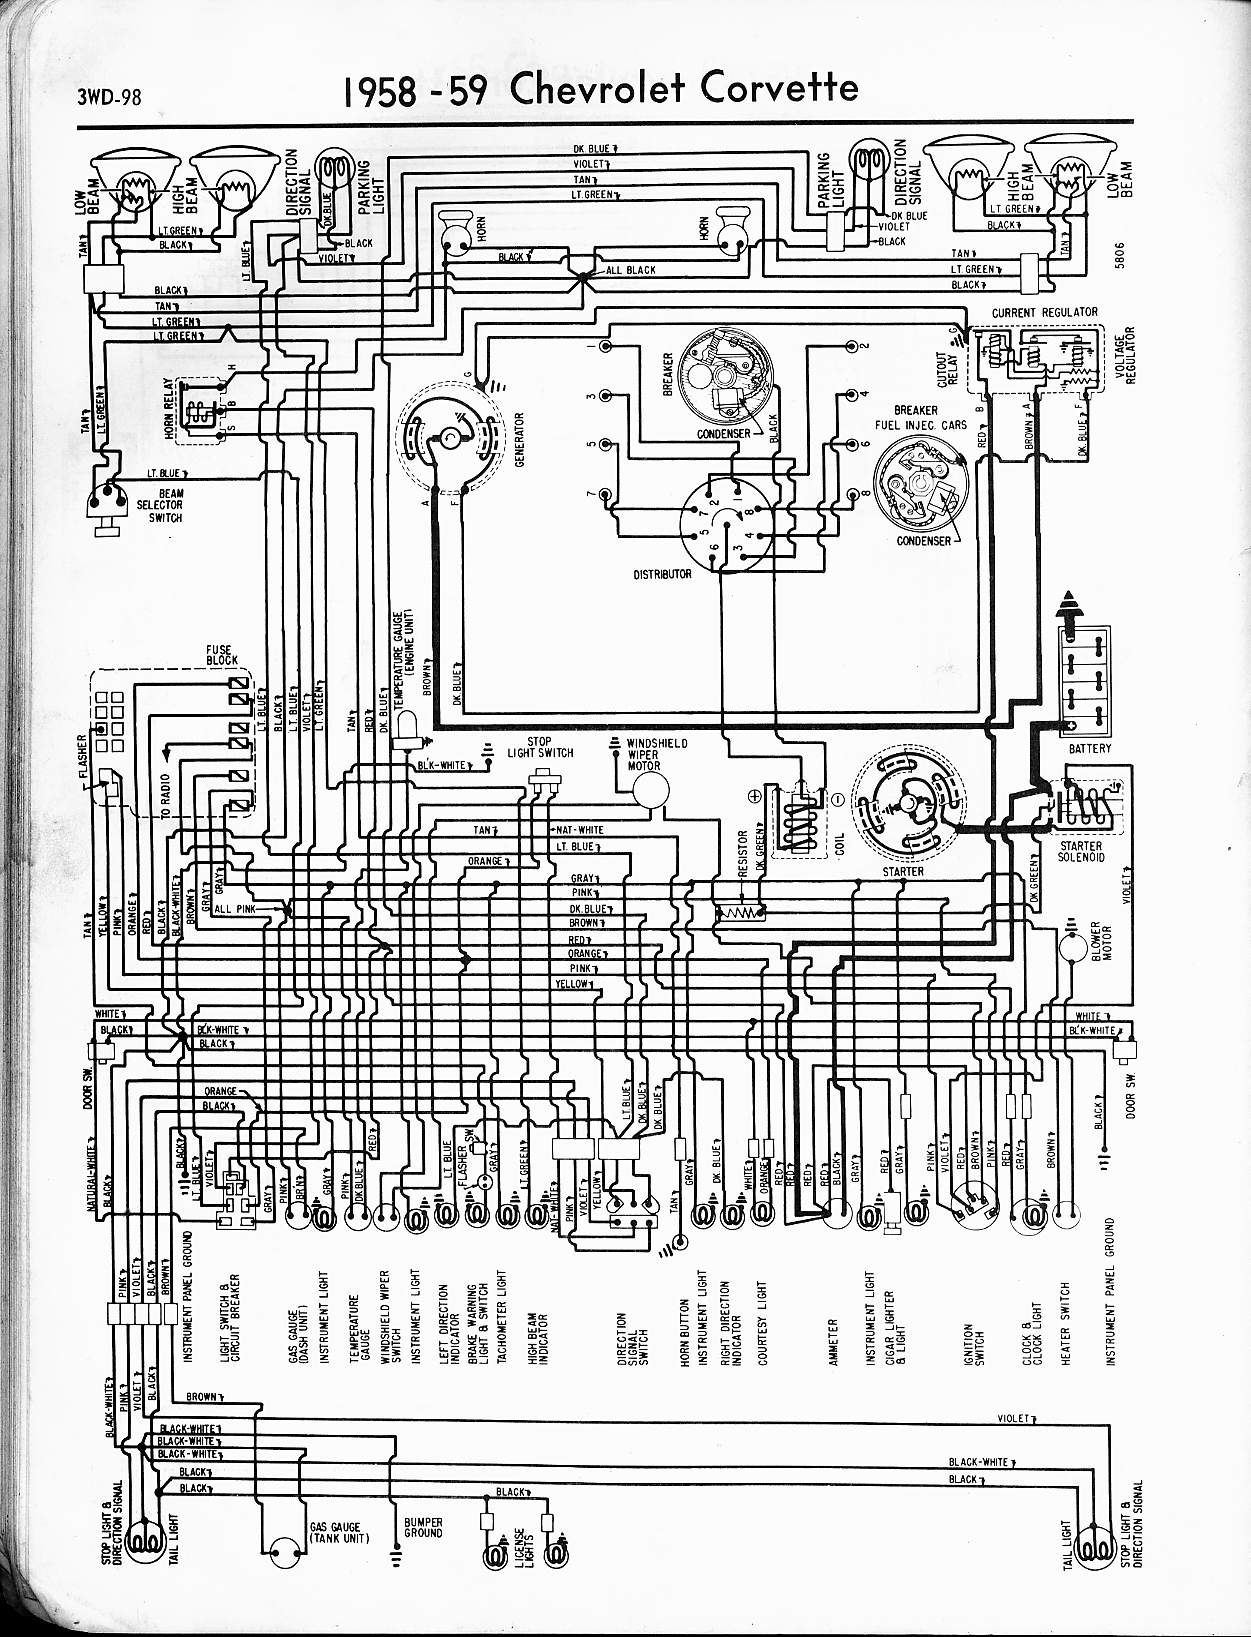 wire diagram for a 1965 chevy c 20 wiring diagram portal u2022 rh graphiko co